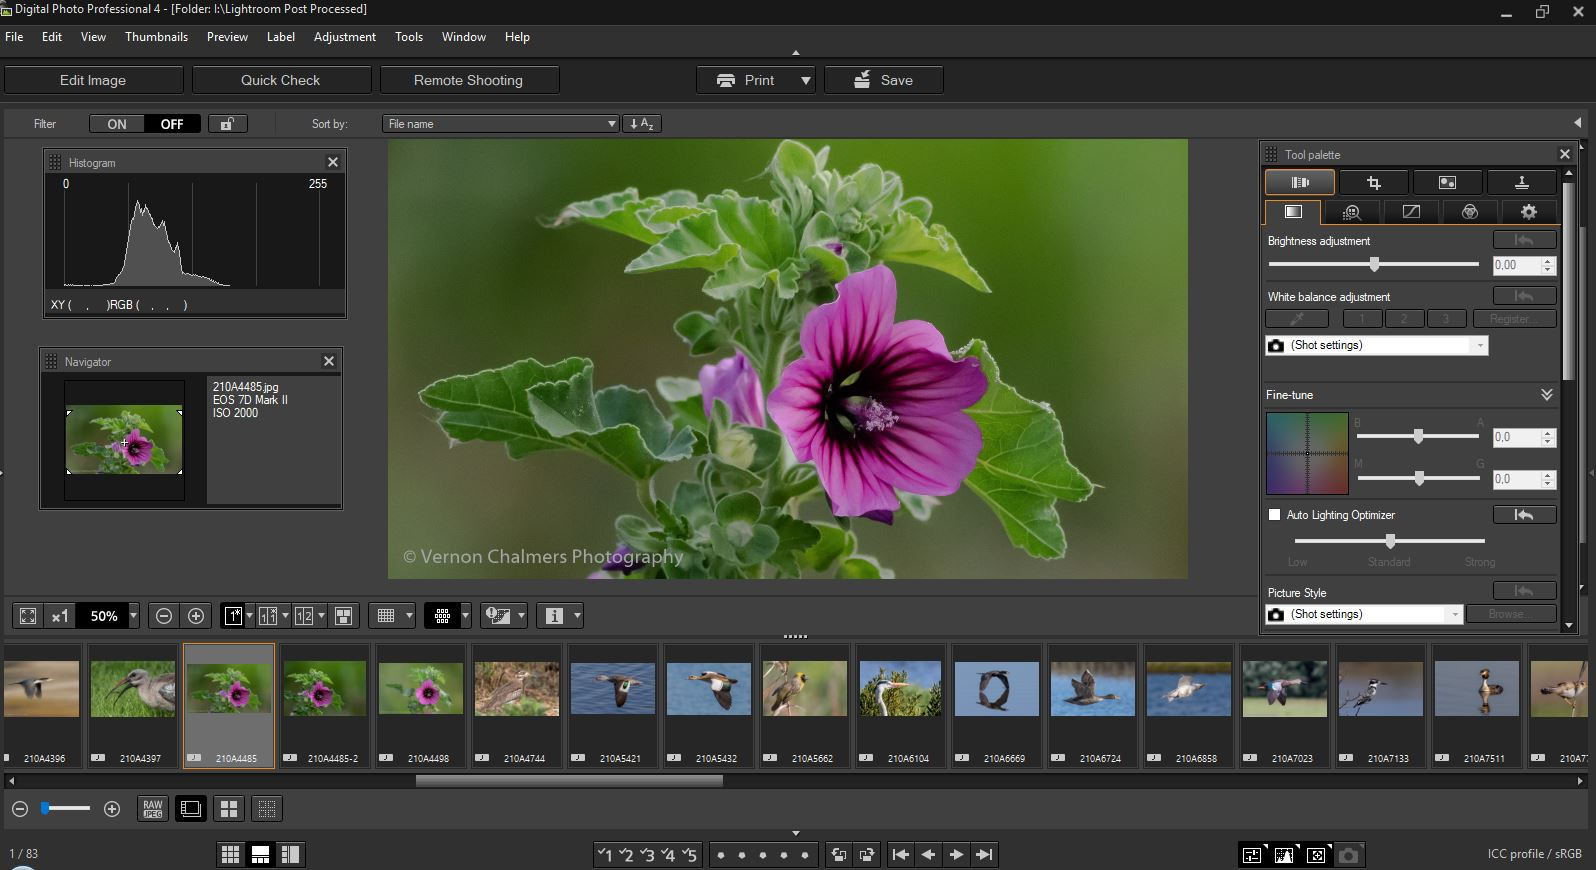 canon eos digital rebel software free download